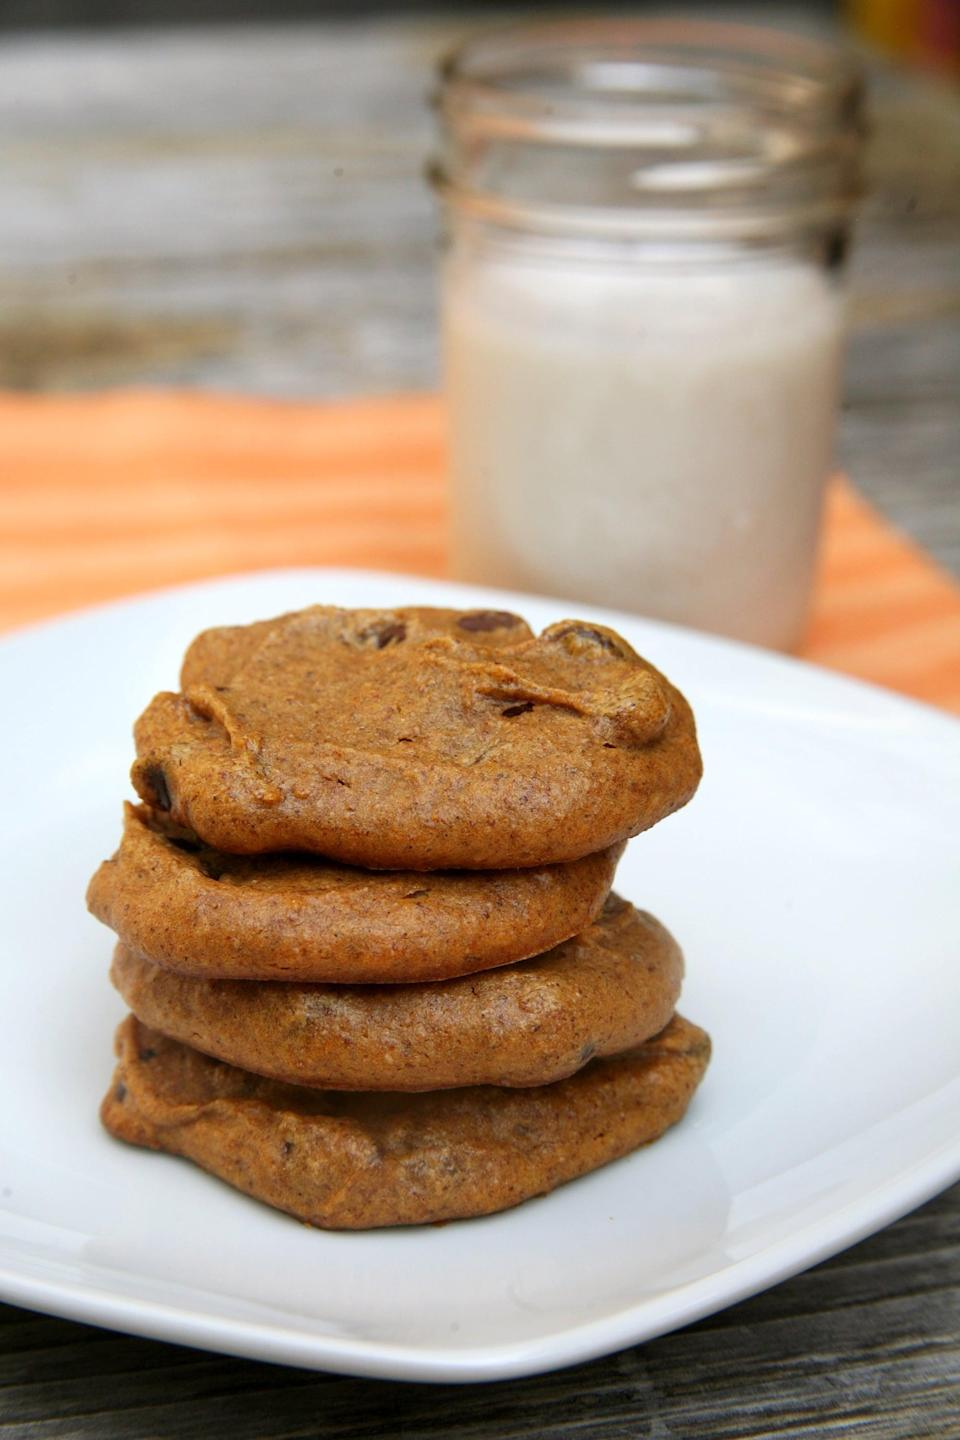 """<p>These tasty pumpkin cookies are grain-free and totally vegan. Seven grams of carbs and 4.5 grams of sugar help them fit right into your keto diet, too.</p> <p><strong>Get the recipe:</strong> <a href=""""https://www.popsugar.com/fitness/Vegan-Gluten-Free-Pumpkin-Cookies-27884350"""" class=""""link rapid-noclick-resp"""" rel=""""nofollow noopener"""" target=""""_blank"""" data-ylk=""""slk:gluten-free pumpkin chocolate chip cookies"""">gluten-free pumpkin chocolate chip cookies</a></p>"""